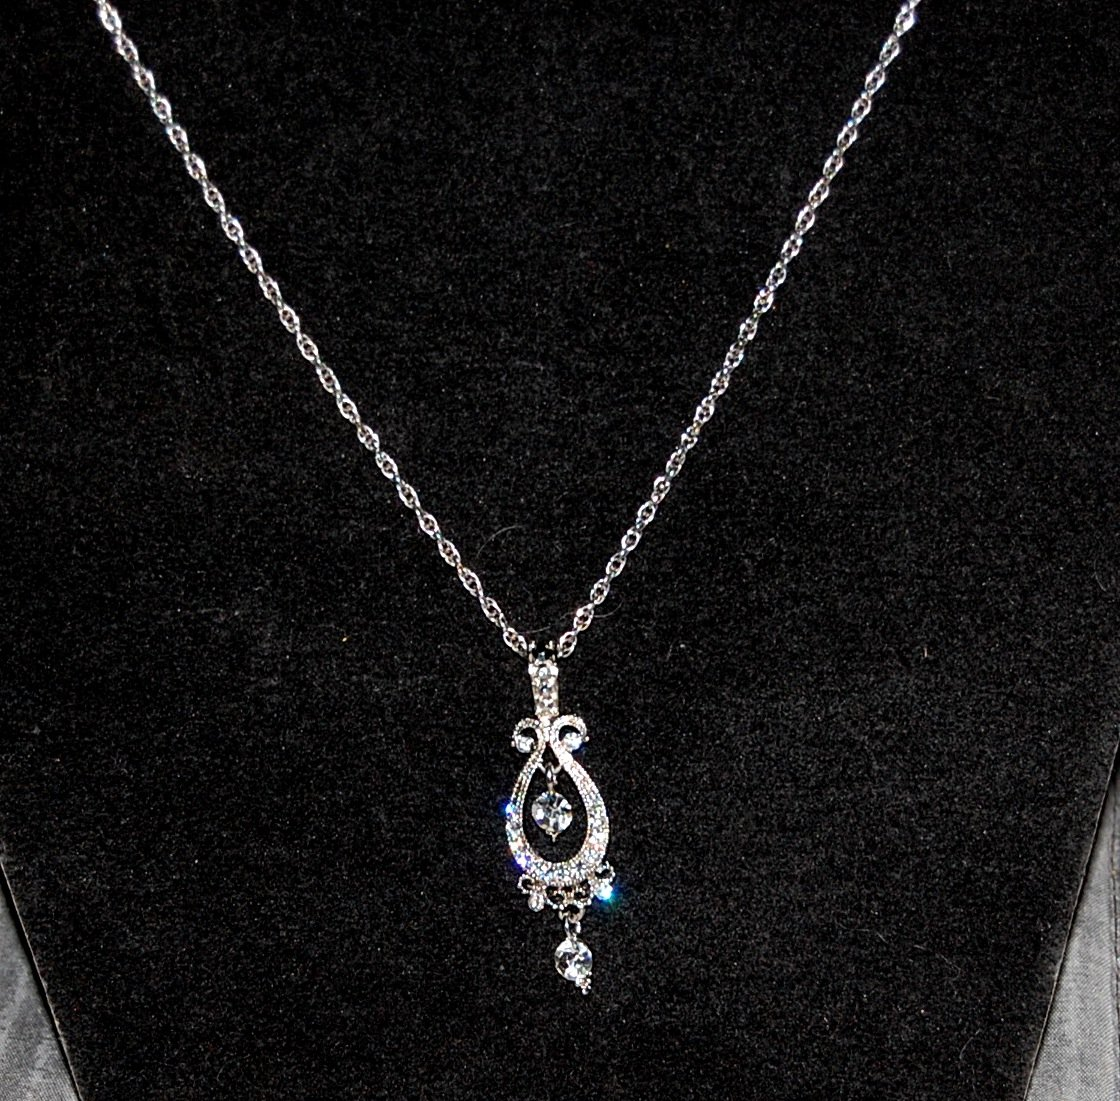 Silver Chain and Pendant with White Stones